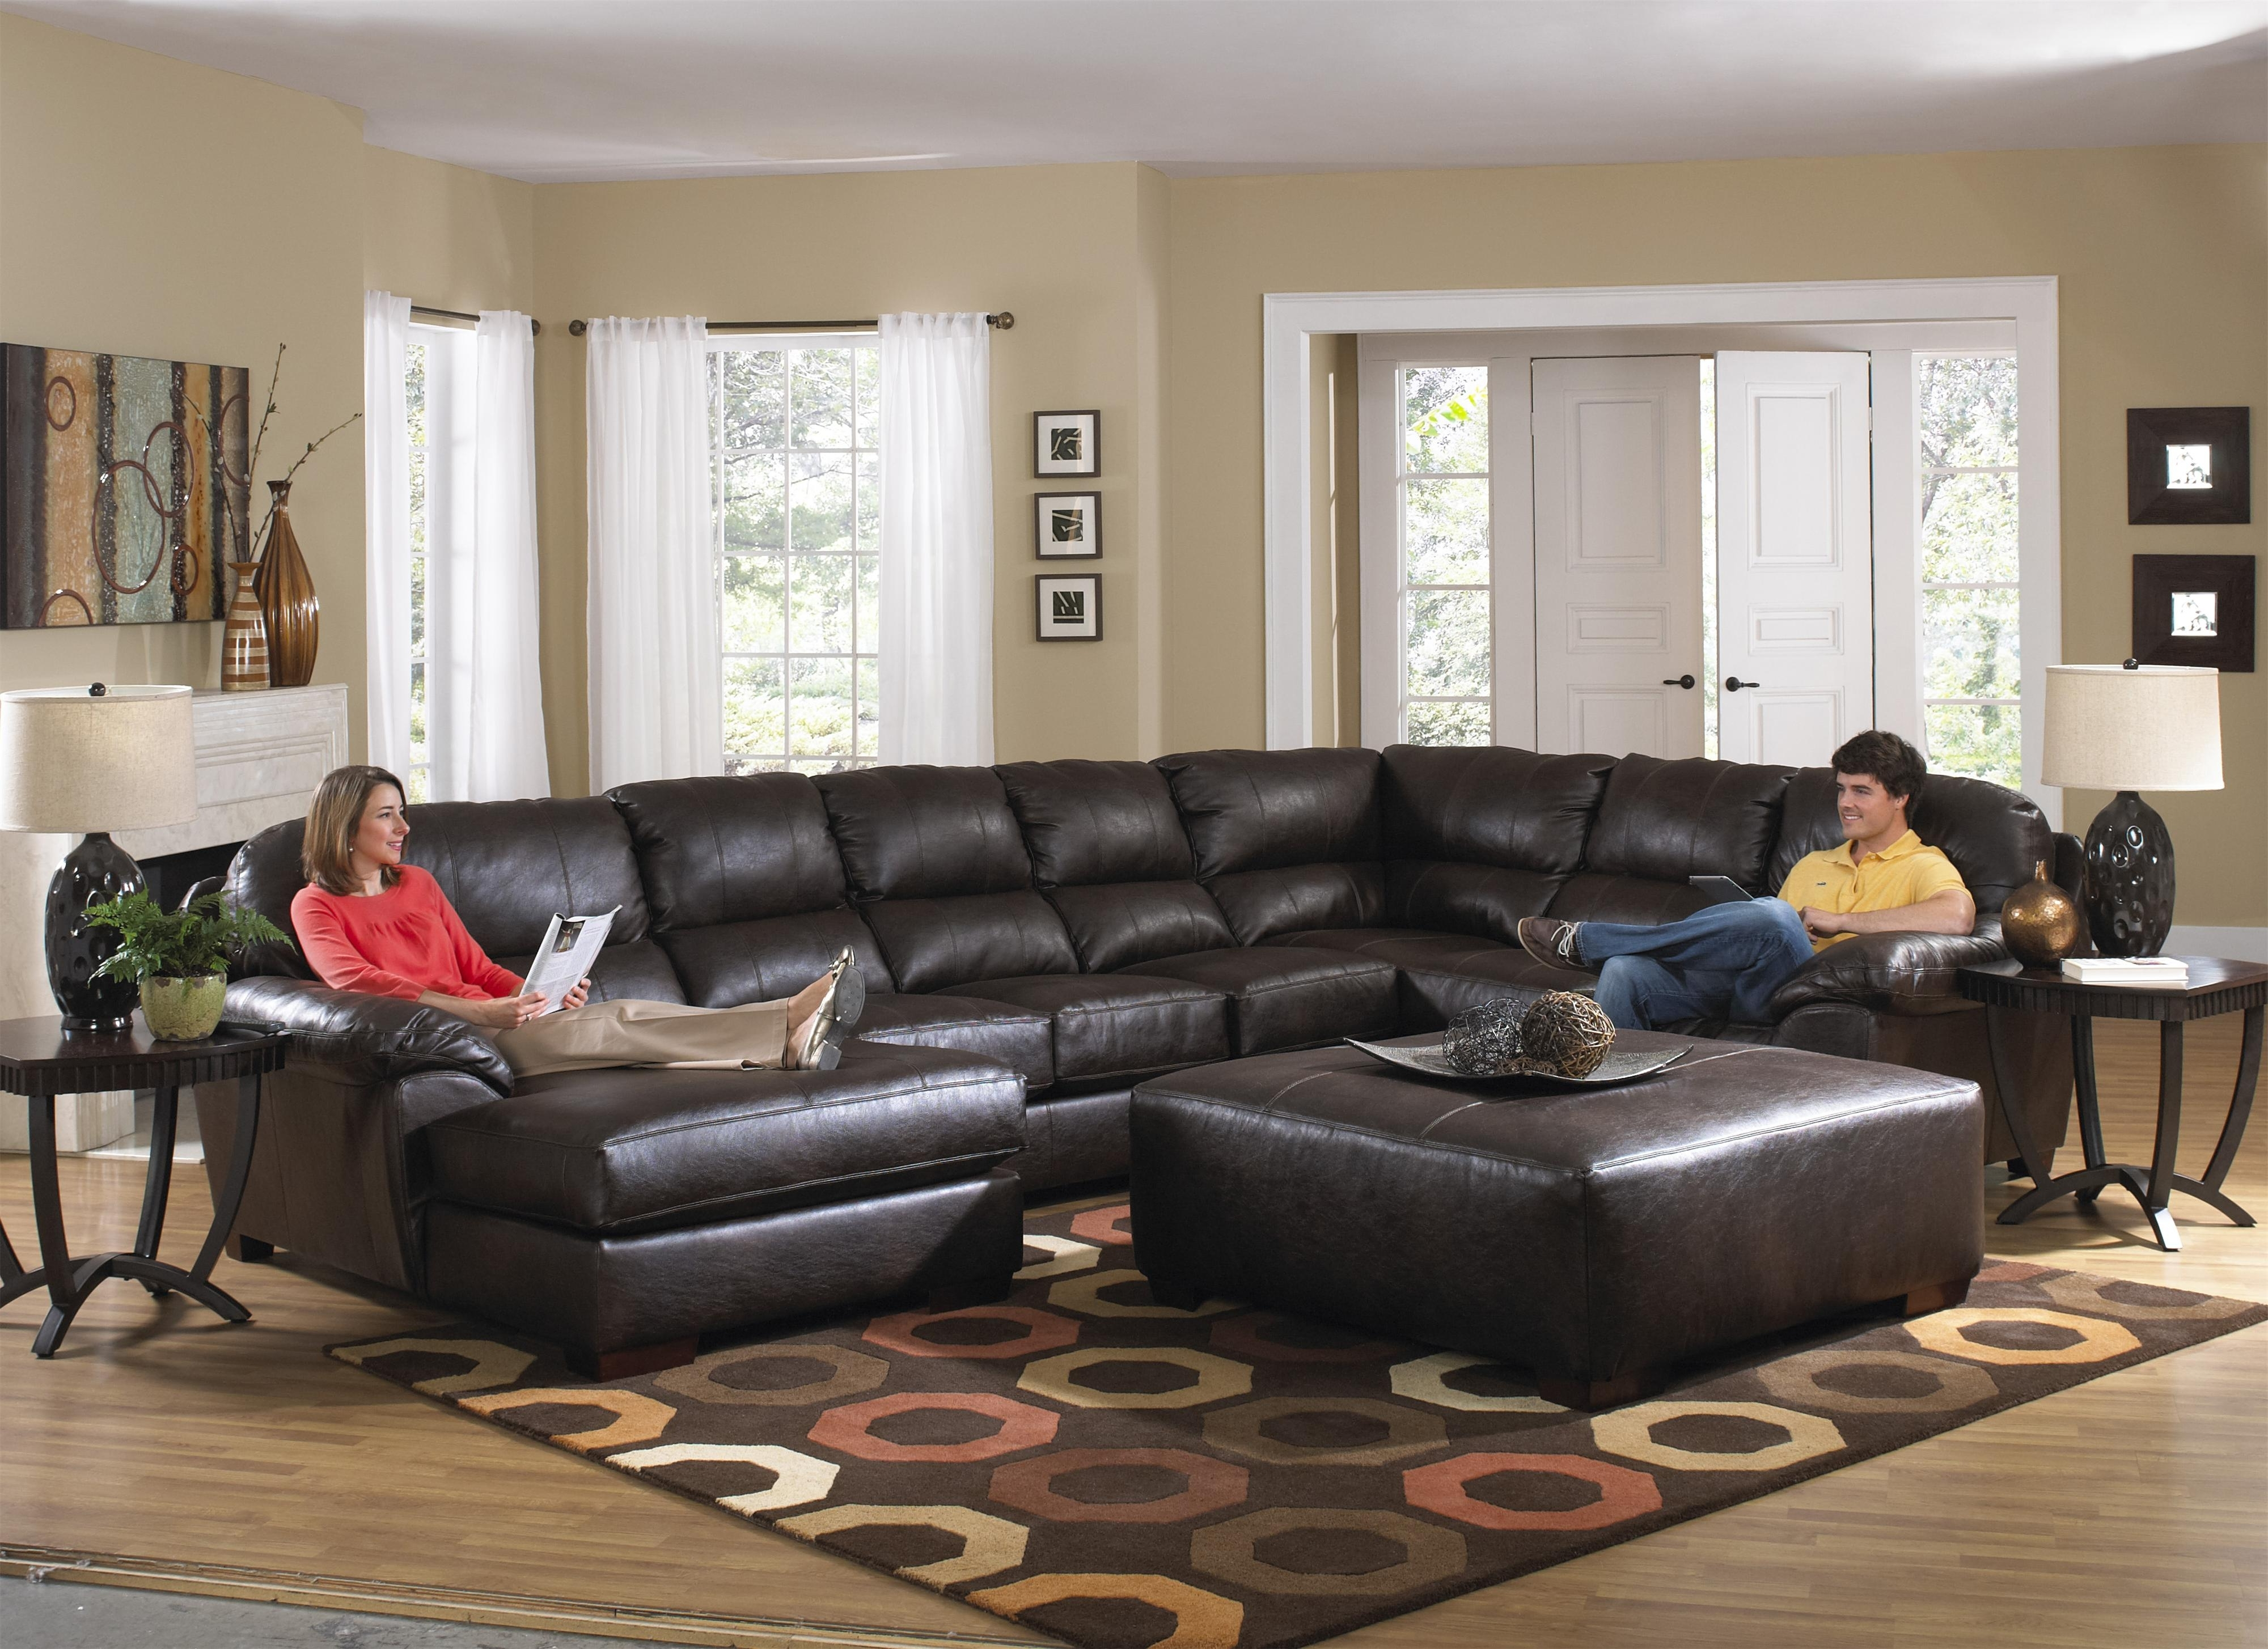 Extra Large U Shaped Sectionals Regarding Well Known Large Sectional Sofa With Chaise Lounge Cheap Sectional Sofas U (View 7 of 20)